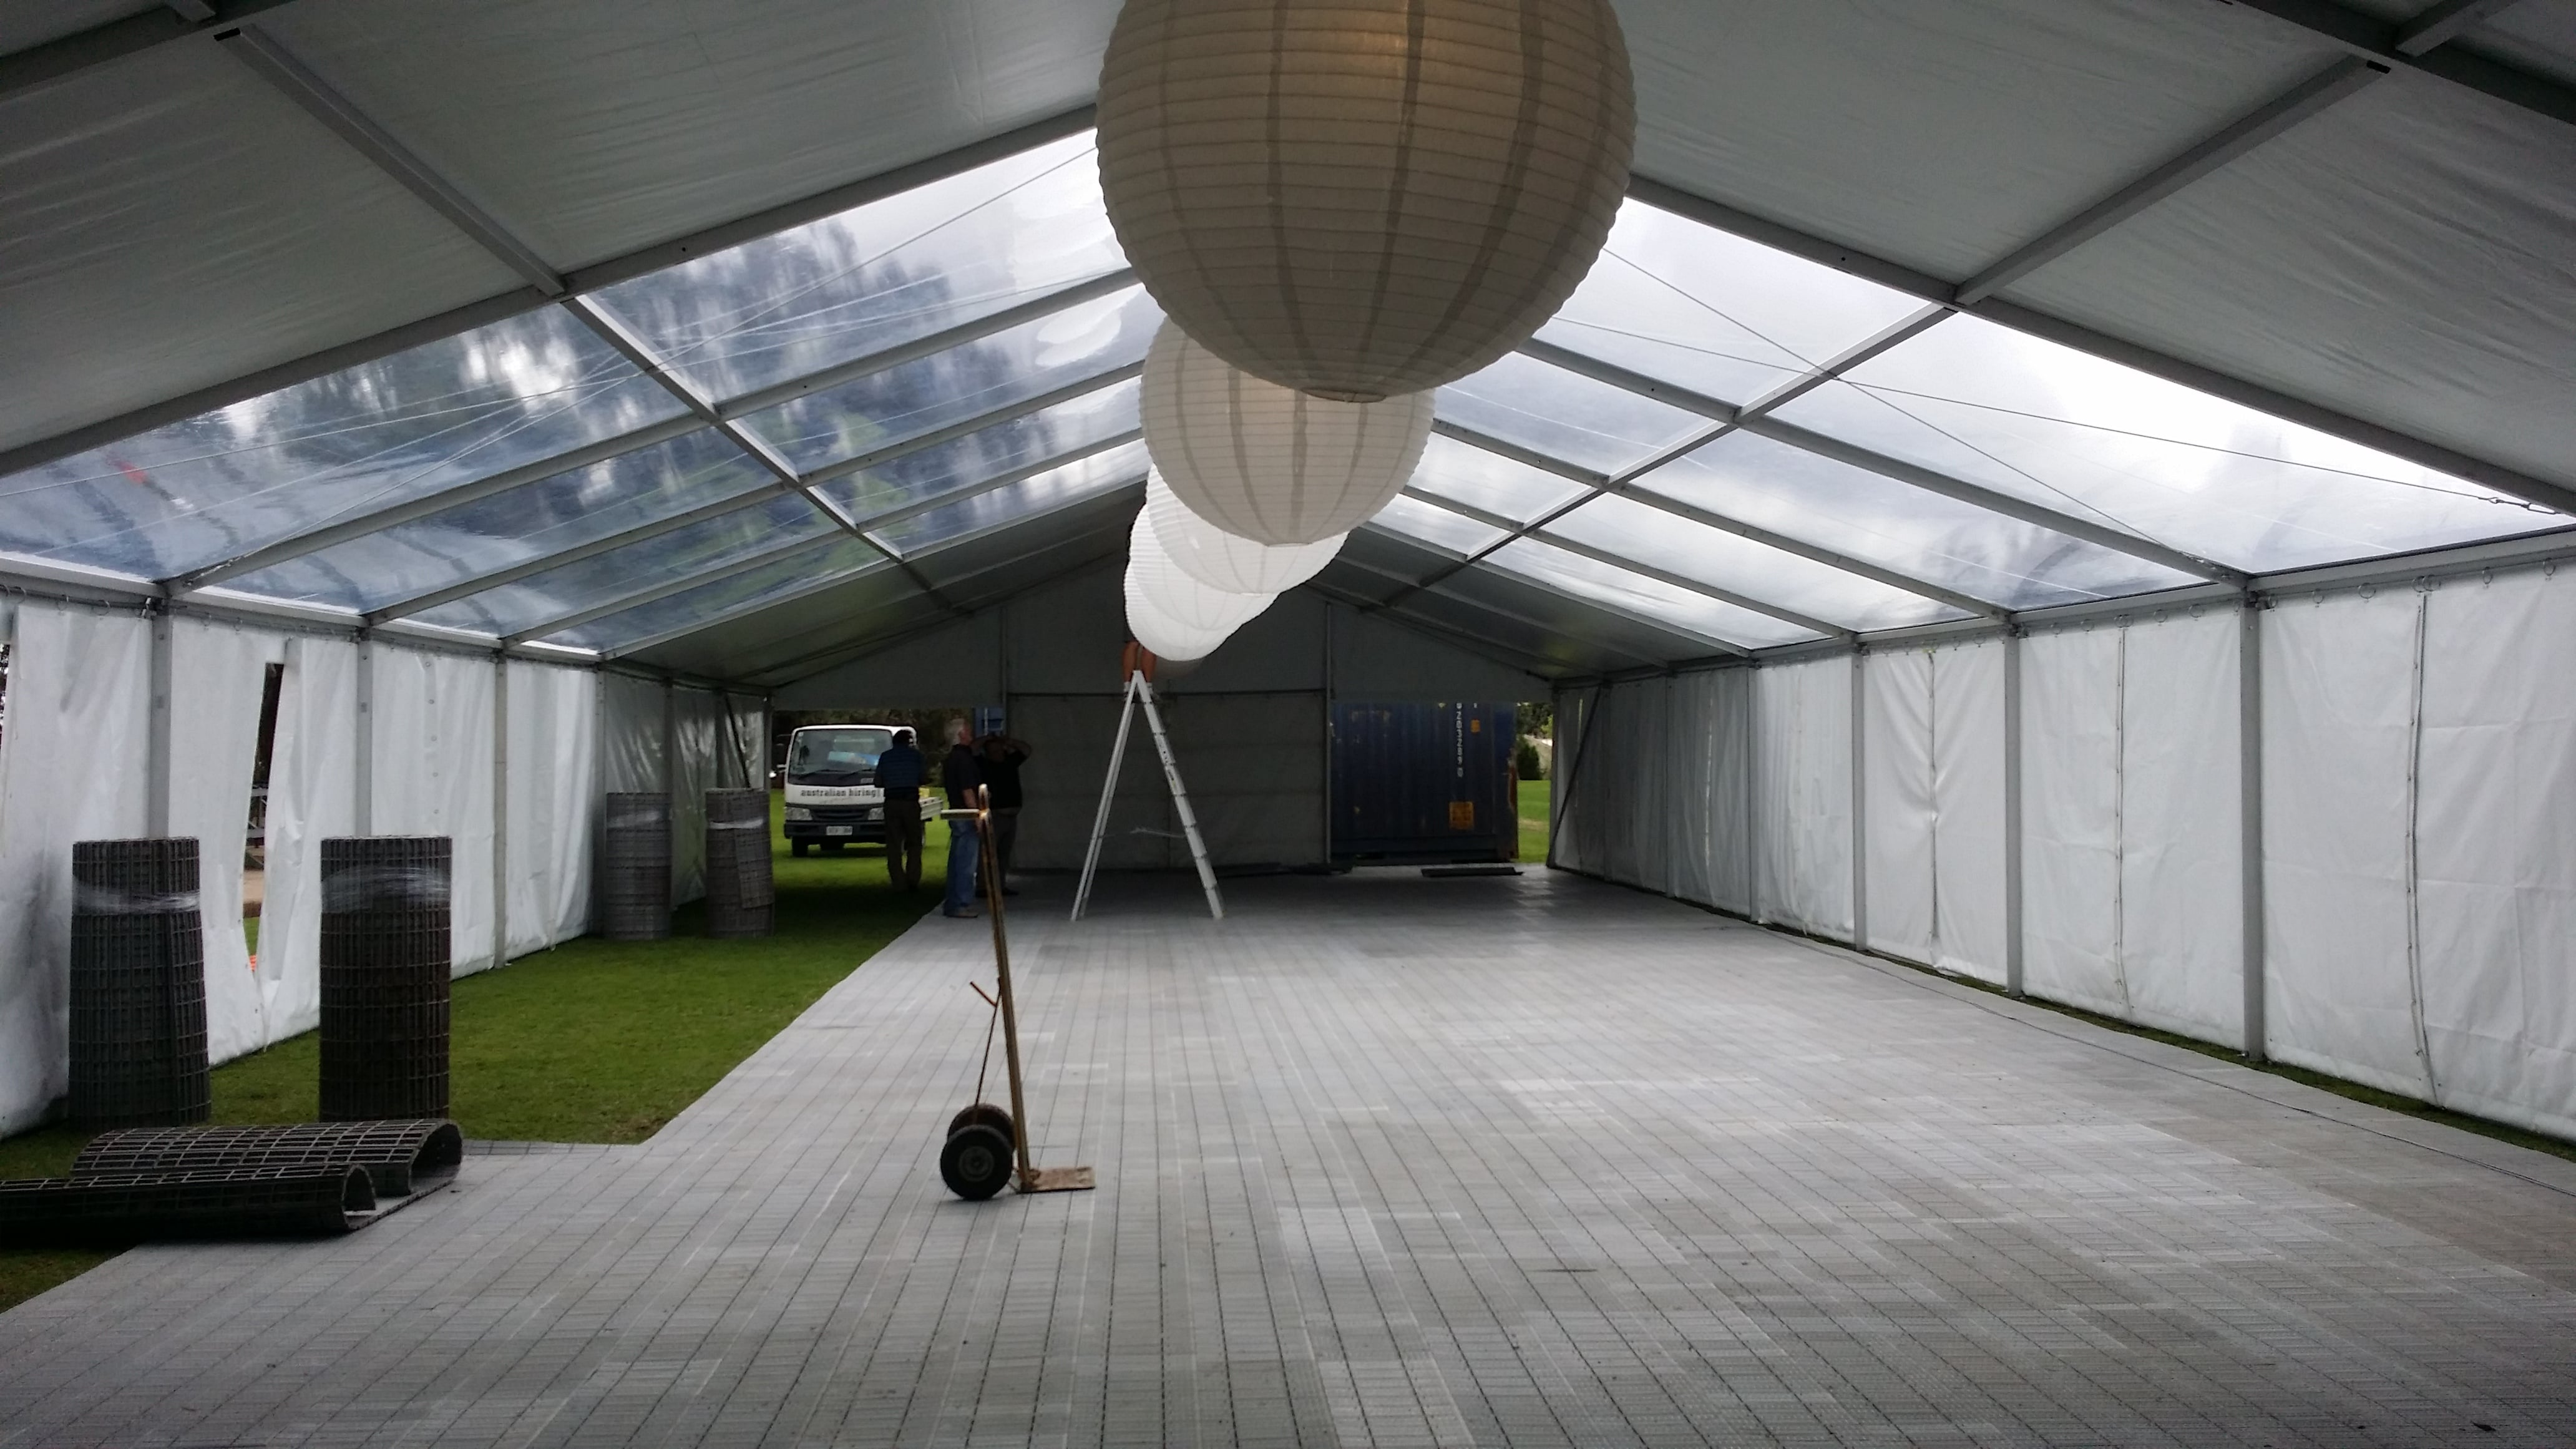 Rugby club pavilion installation